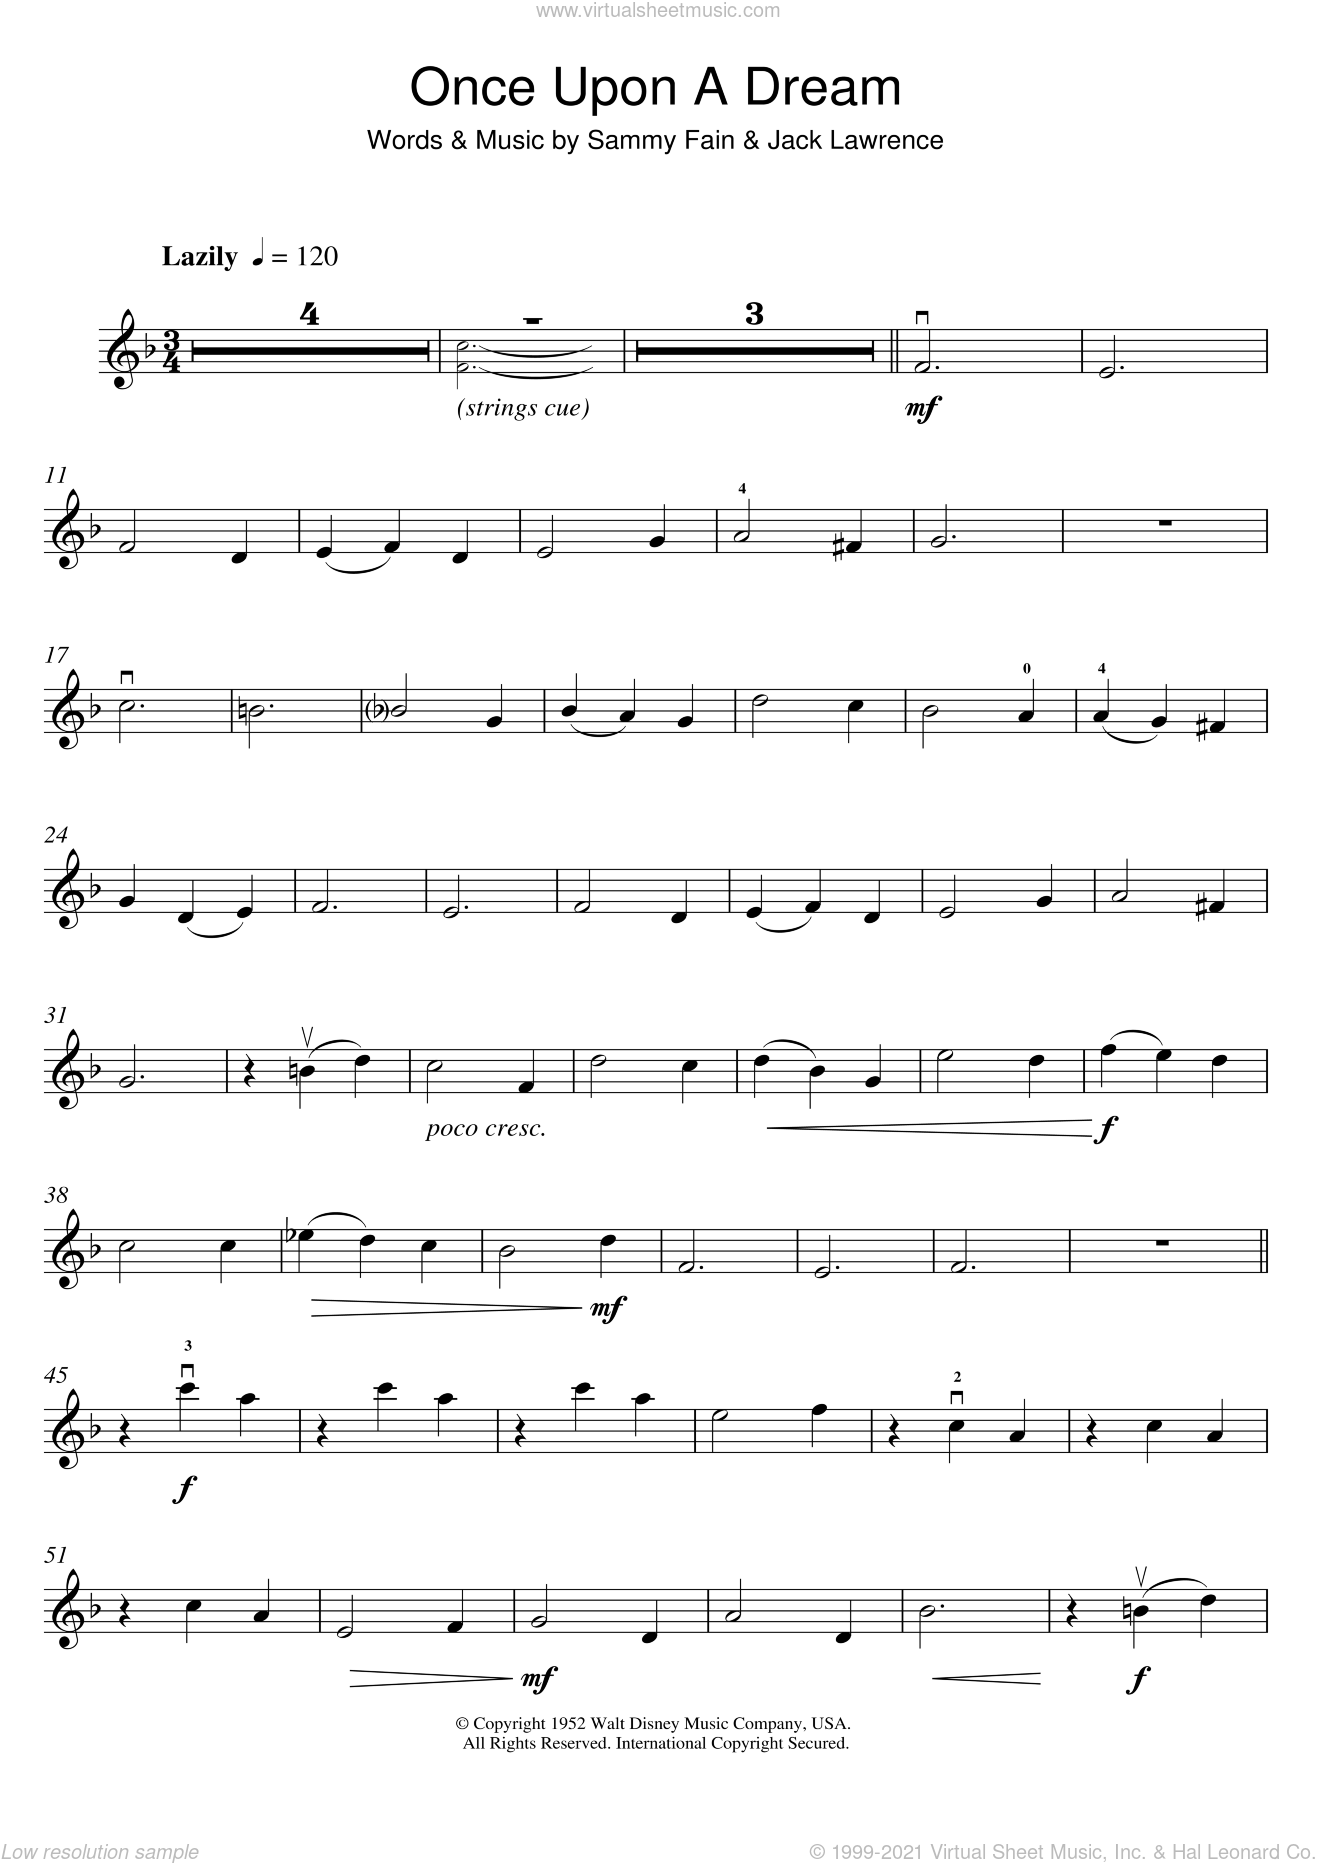 Once Upon A Dream sheet music for violin solo by Lana Del Rey, Jack Lawrence and Sammy Fain, intermediate skill level